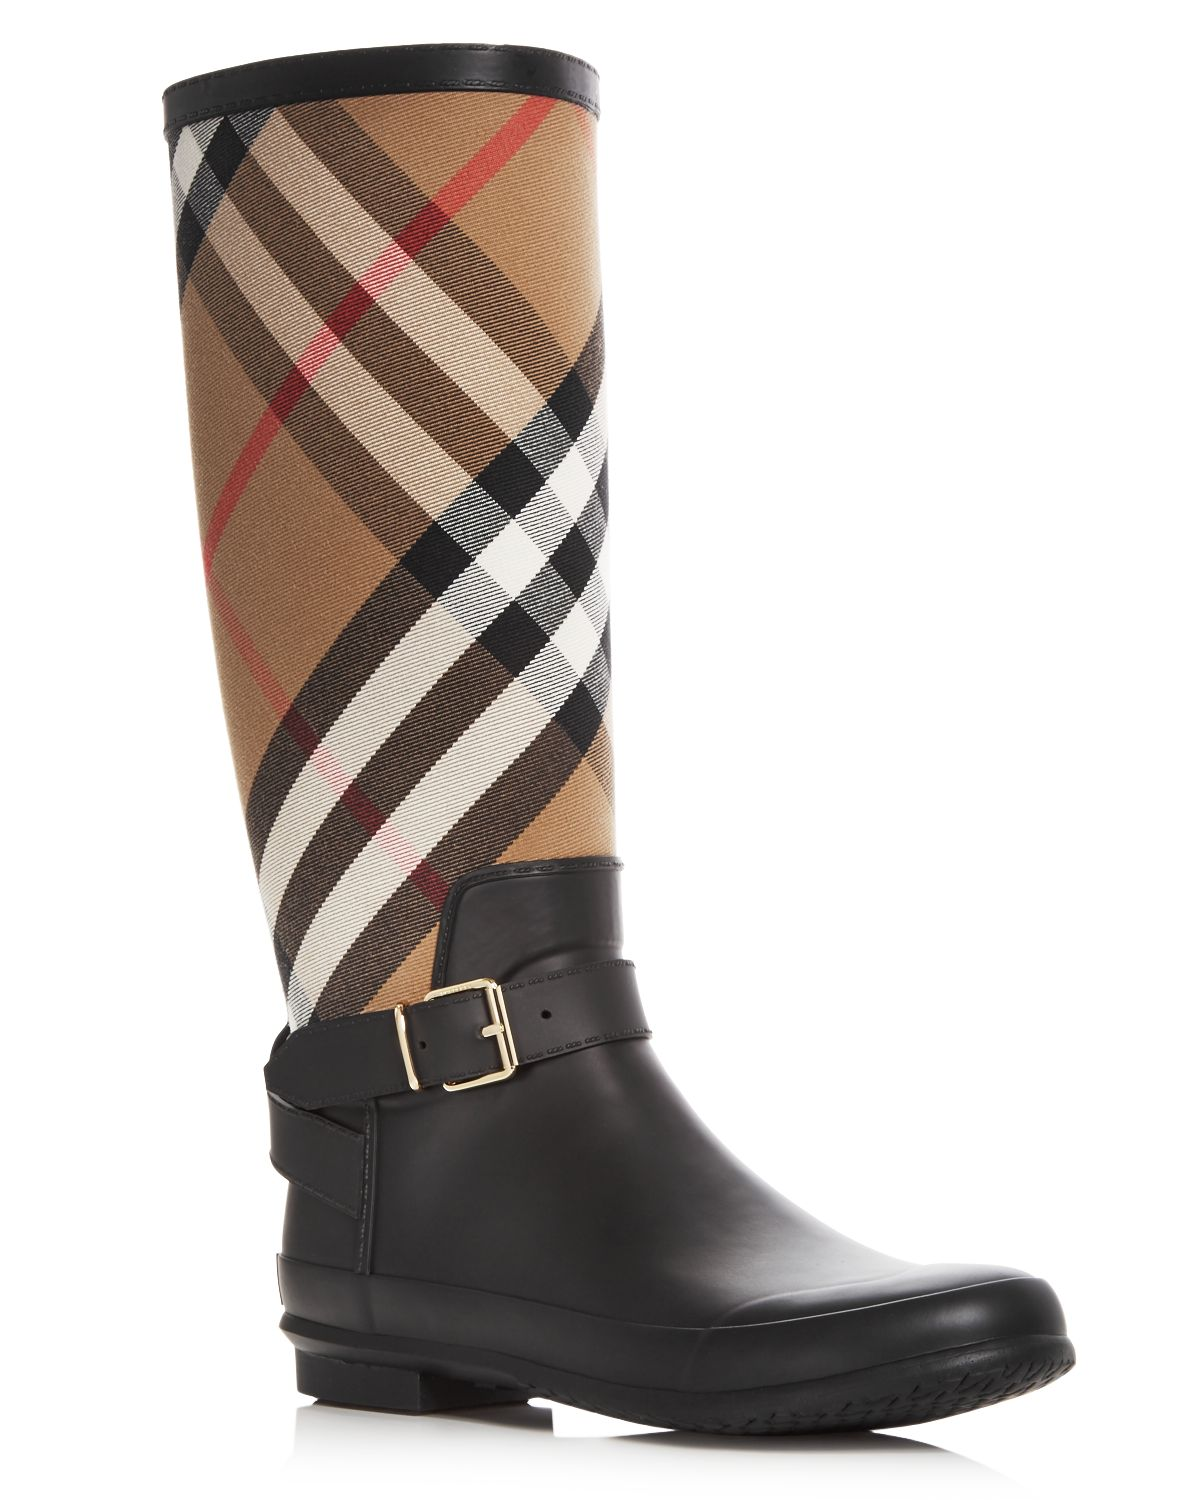 Burberry Women's Simeon Signature Check Rain Boots